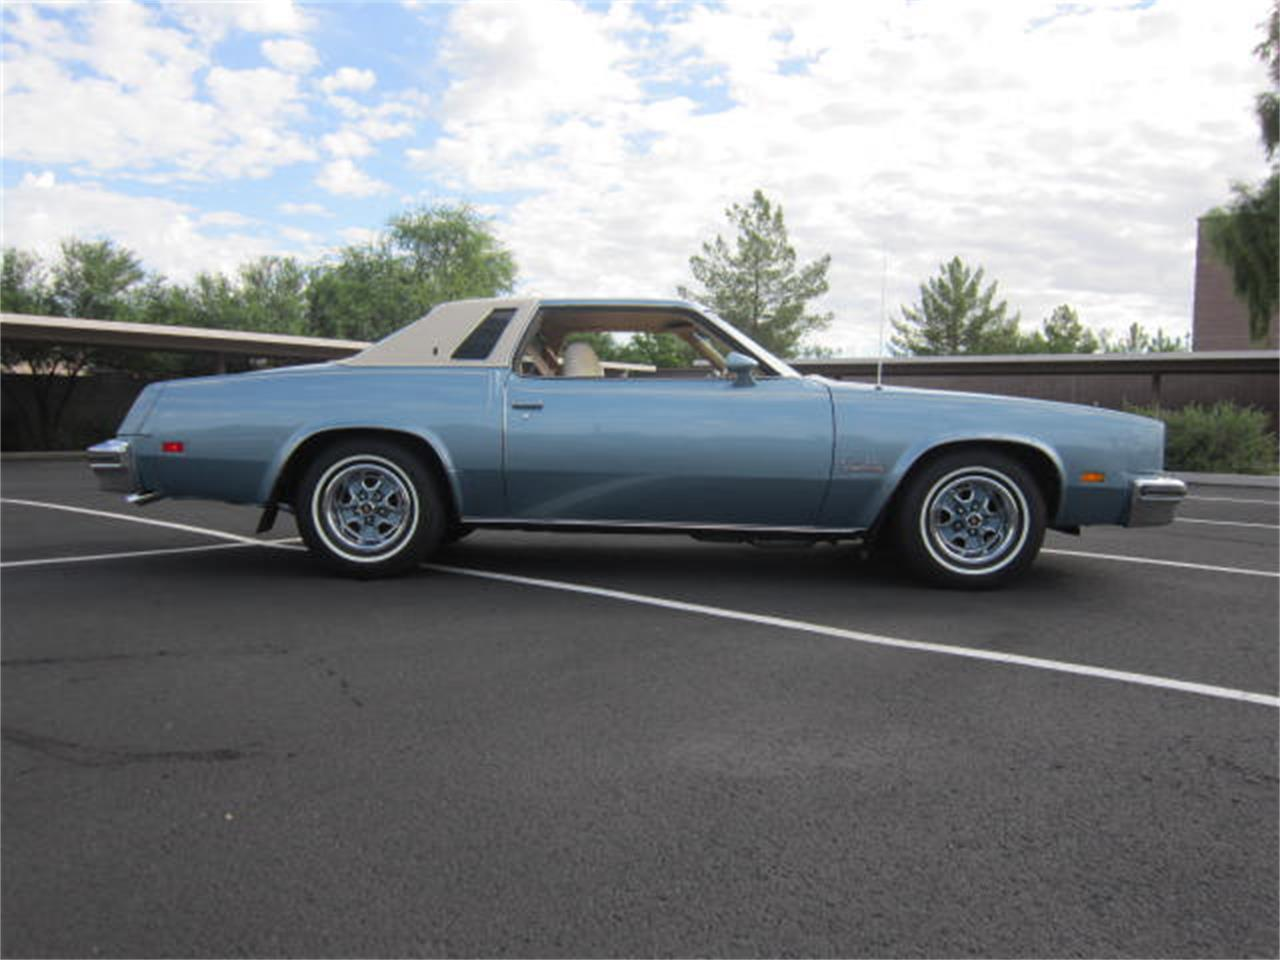 Large Picture of '77 Oldsmobile Cutlass - $15,000.00 Offered by a Private Seller - DISY